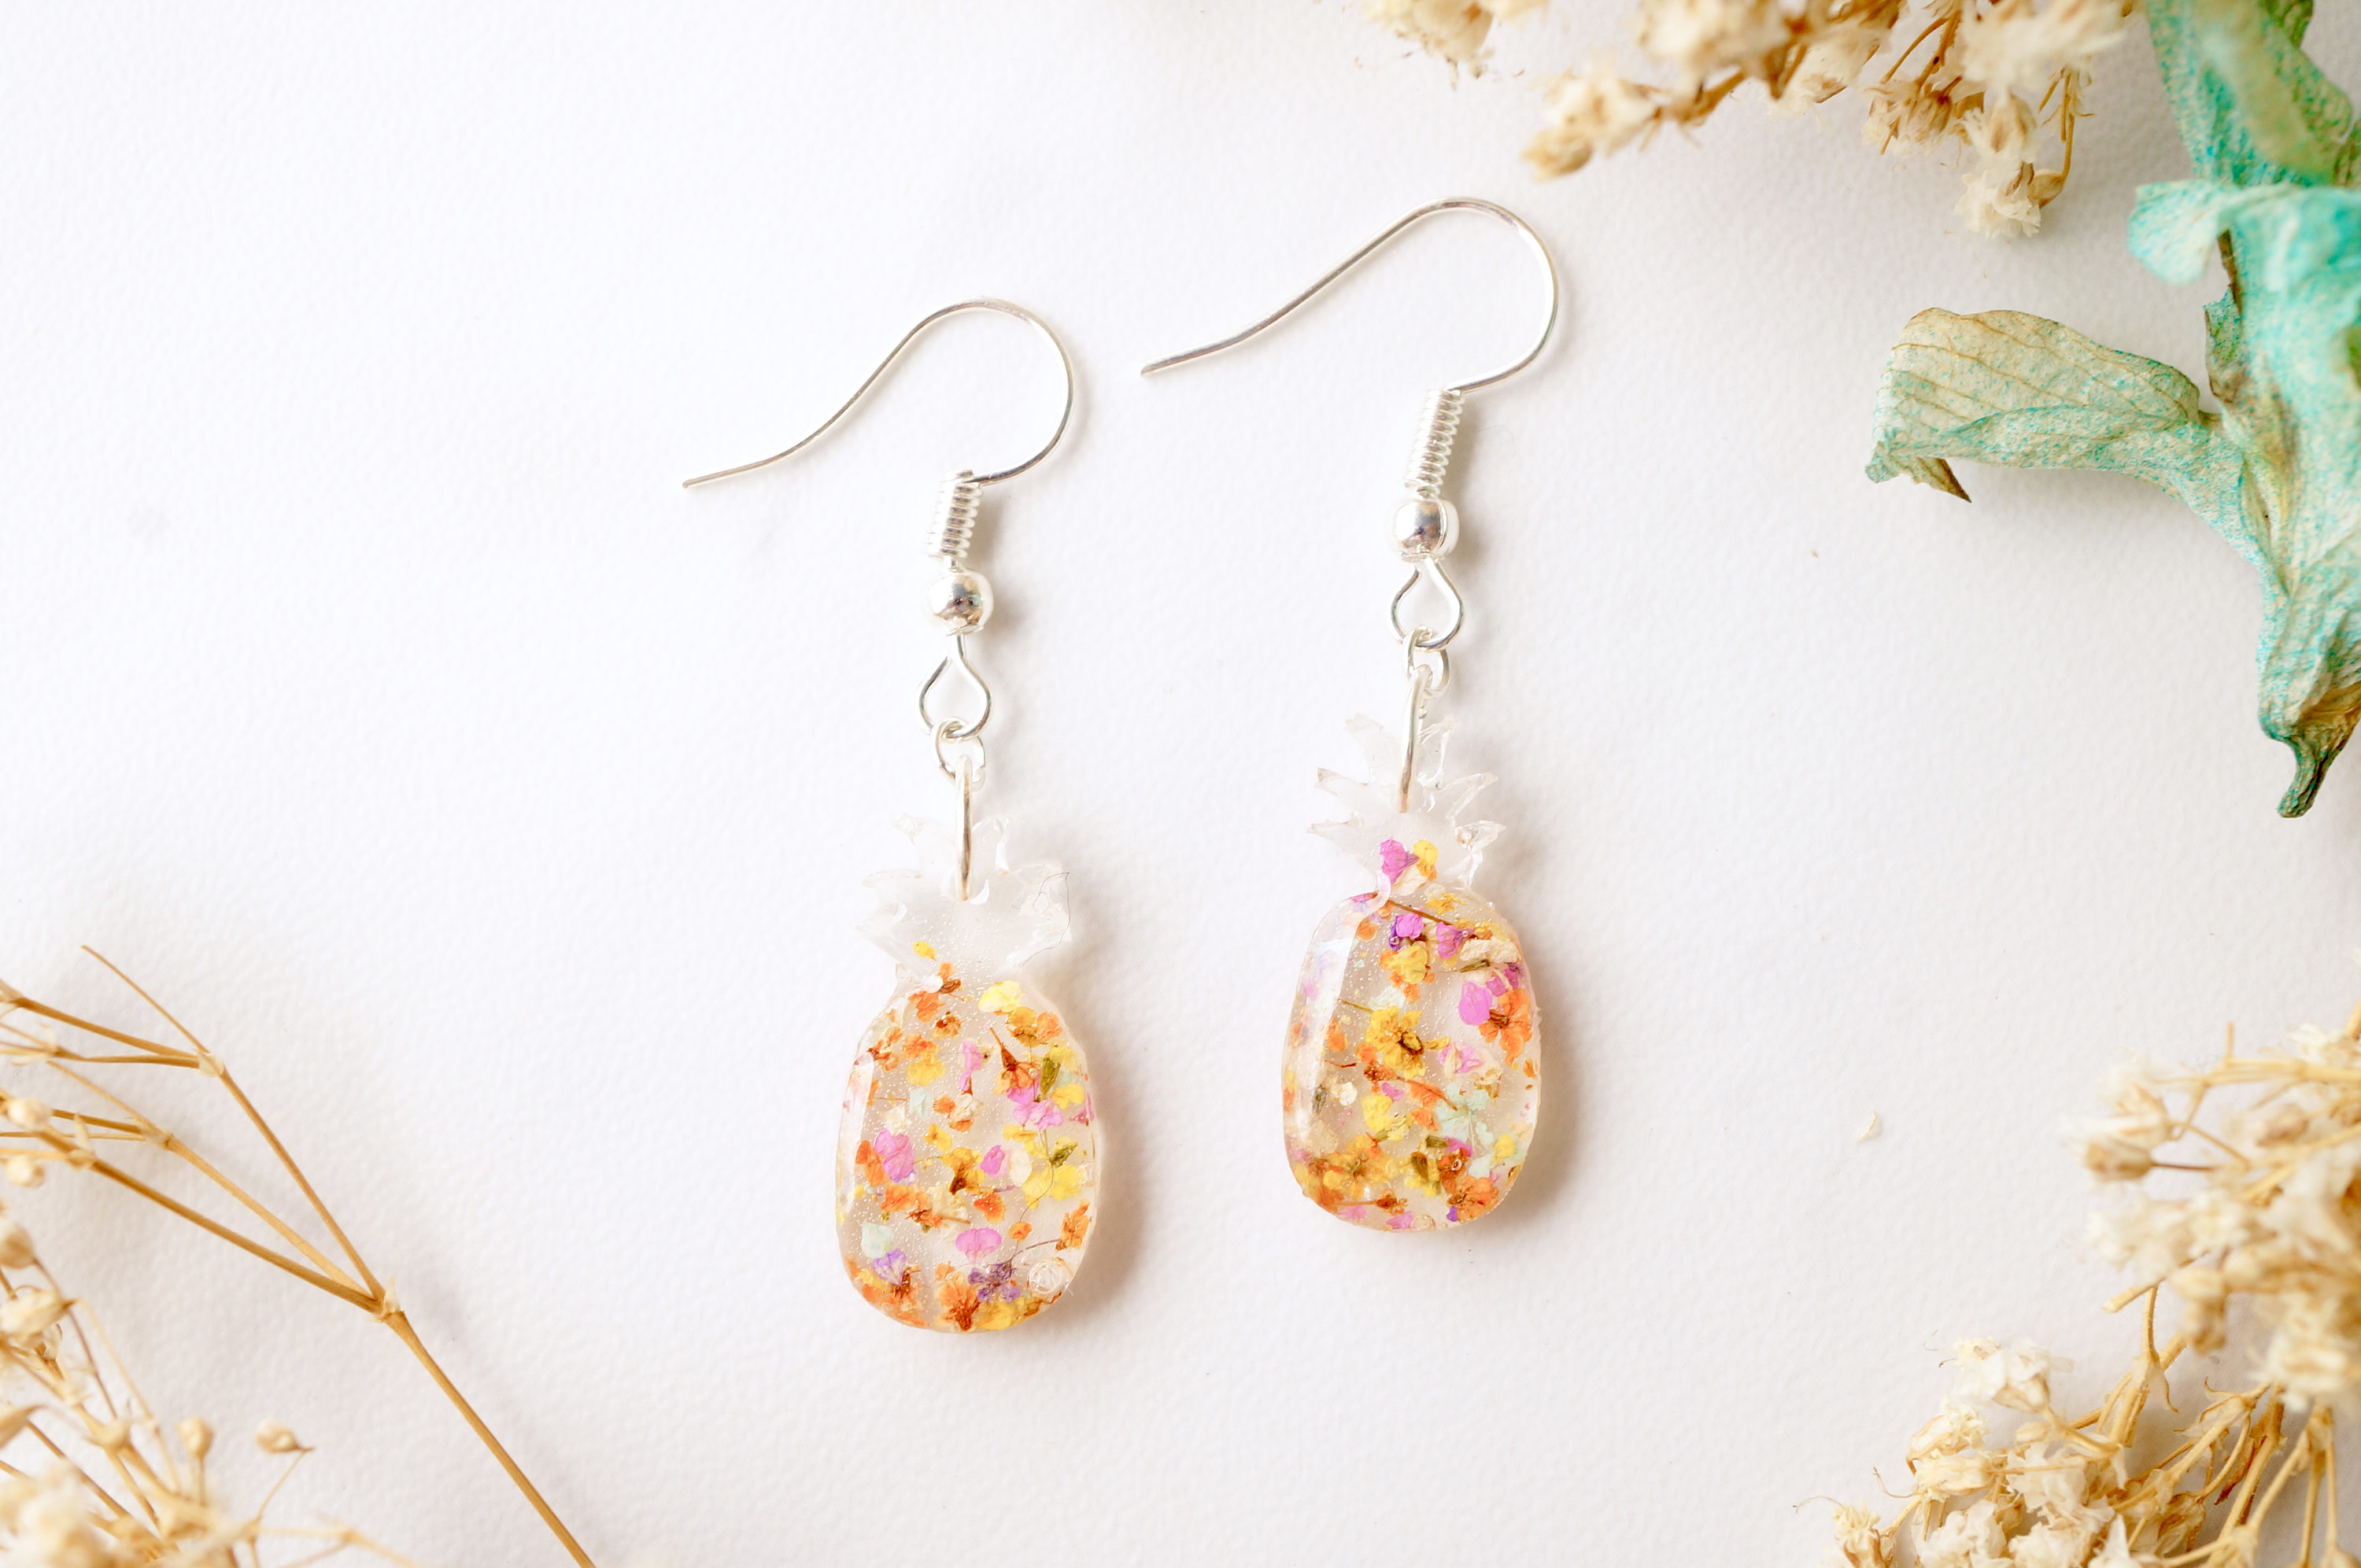 fb94a771d Real Dried Flowers and Resin Earrings, Pineapples in Yellow and ...